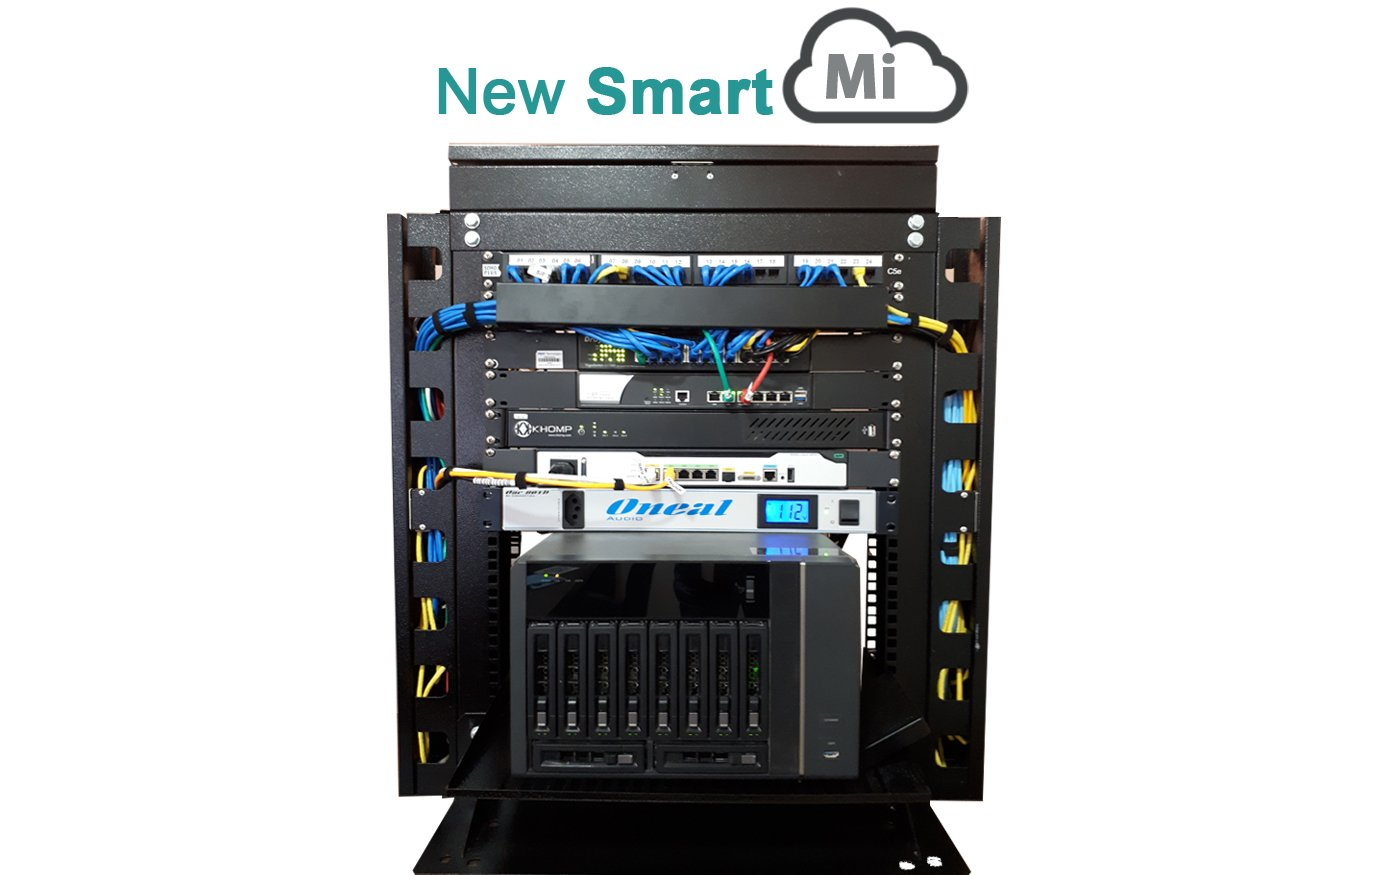 New Smart Cloud